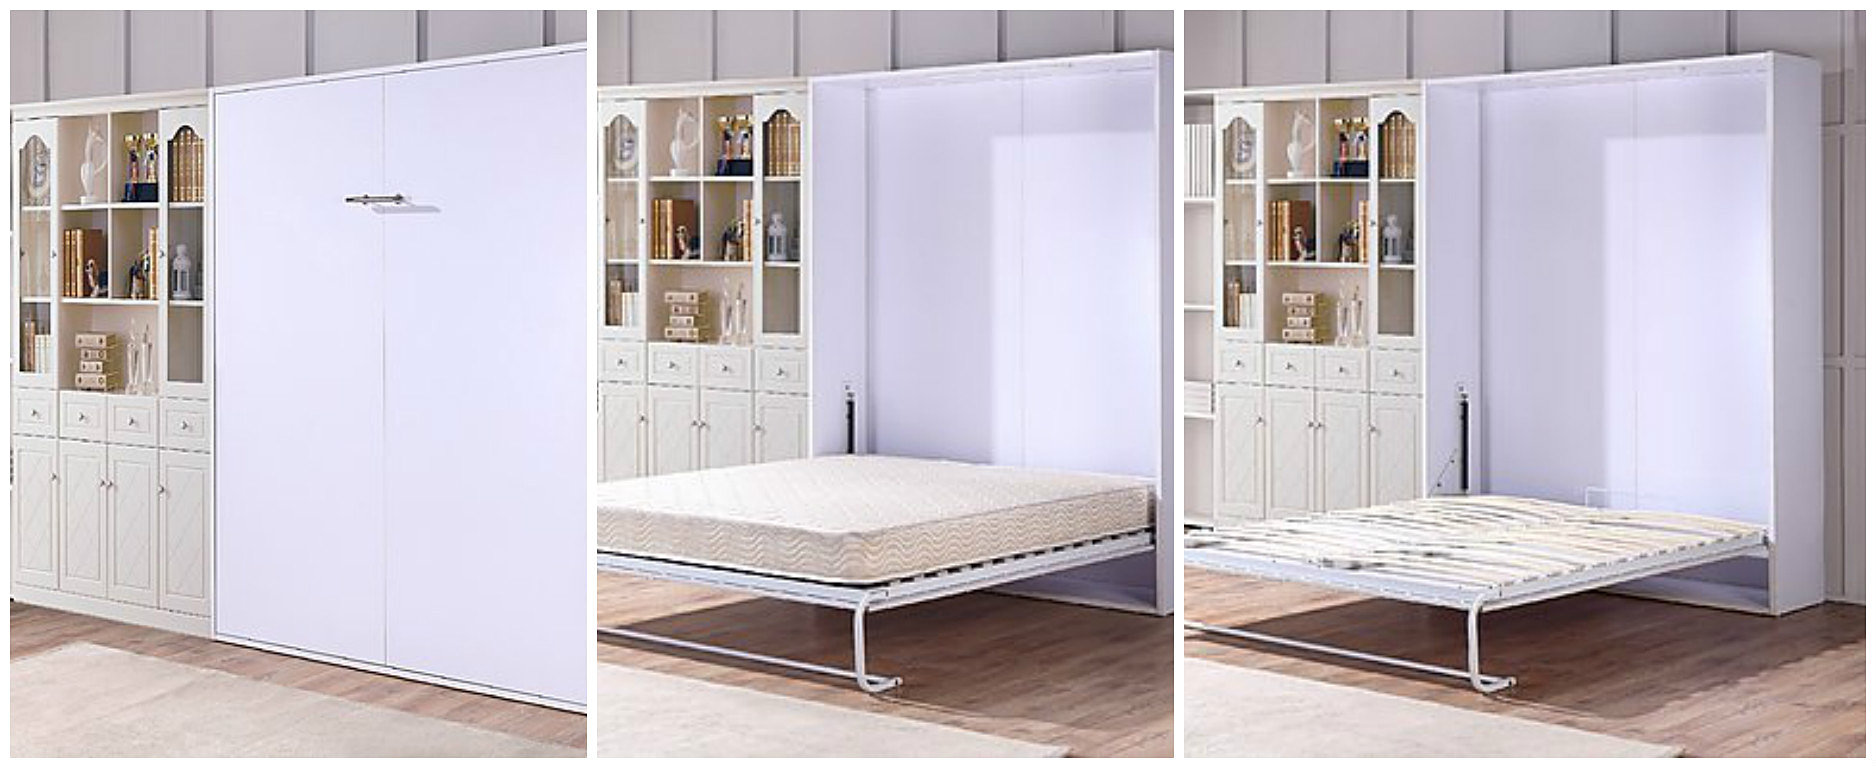 Wall BedTraditional Alder Office With Wall Bed Up Lift U0026